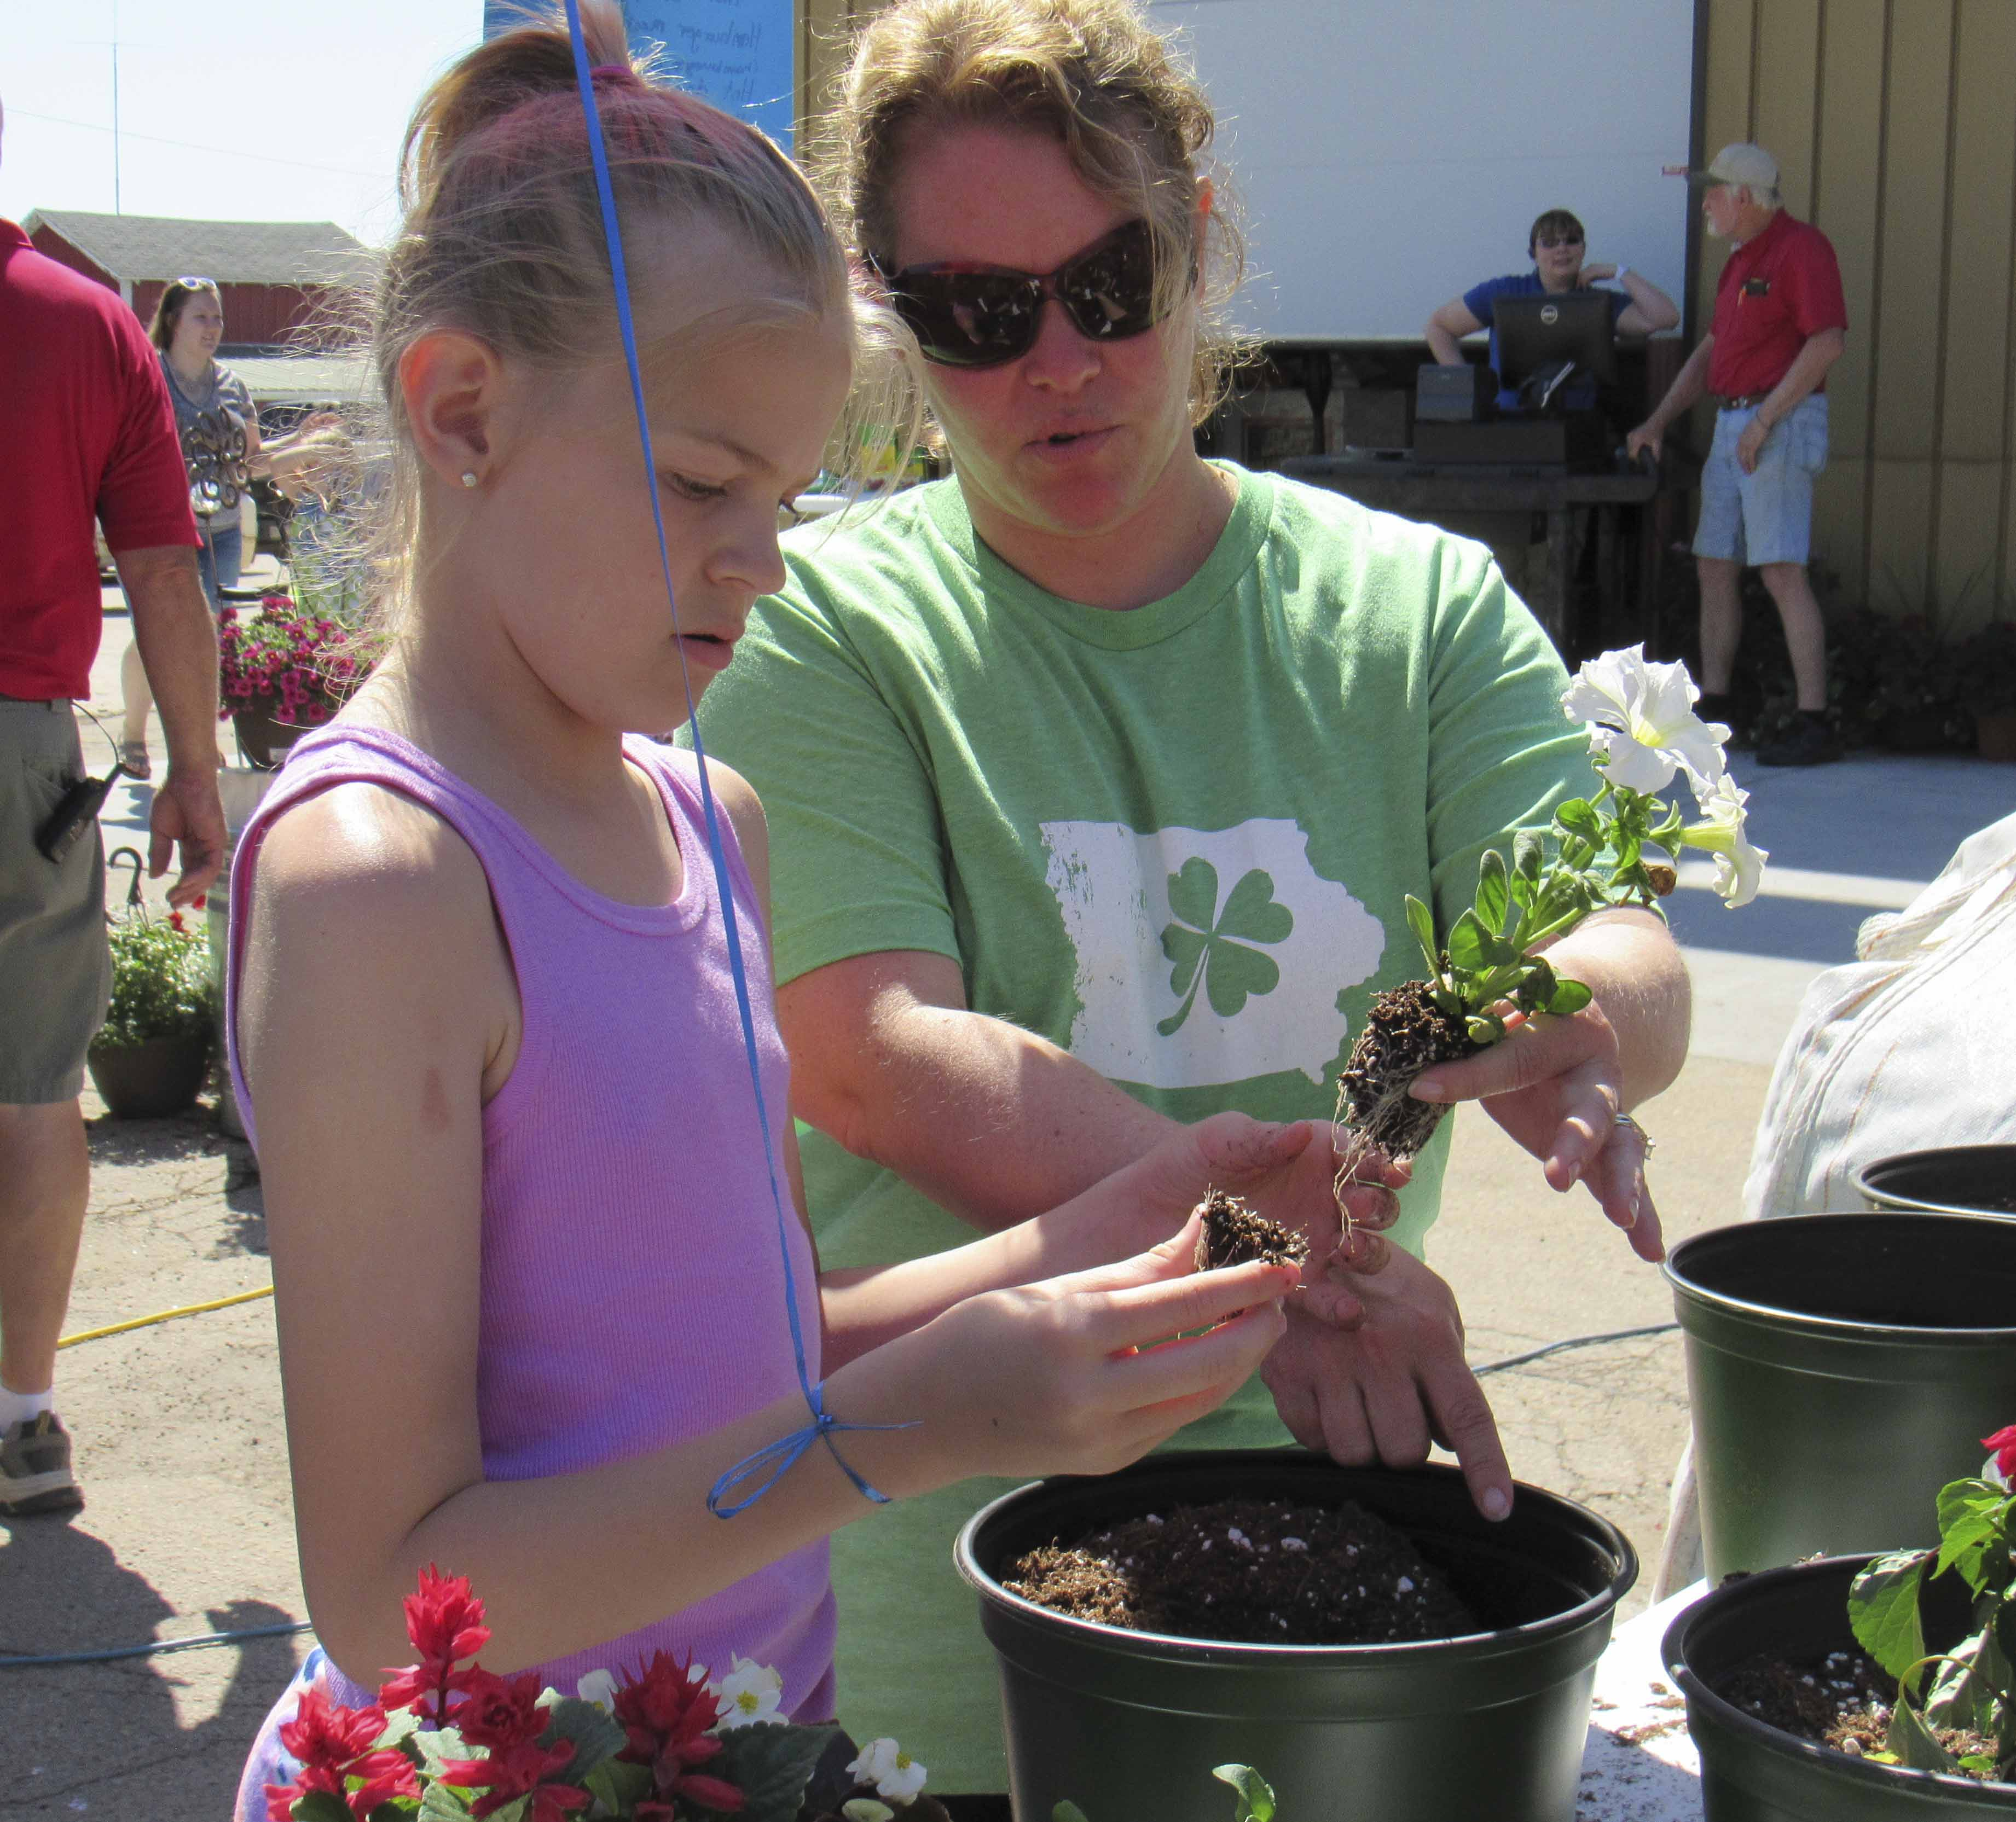 Jessica McElmeel, a parent to a Prairie Hill 4-H member, assisted DeeAnna Pumphrey in planting flowers. The planting demonstration was also free during the Theisen's Open House event.